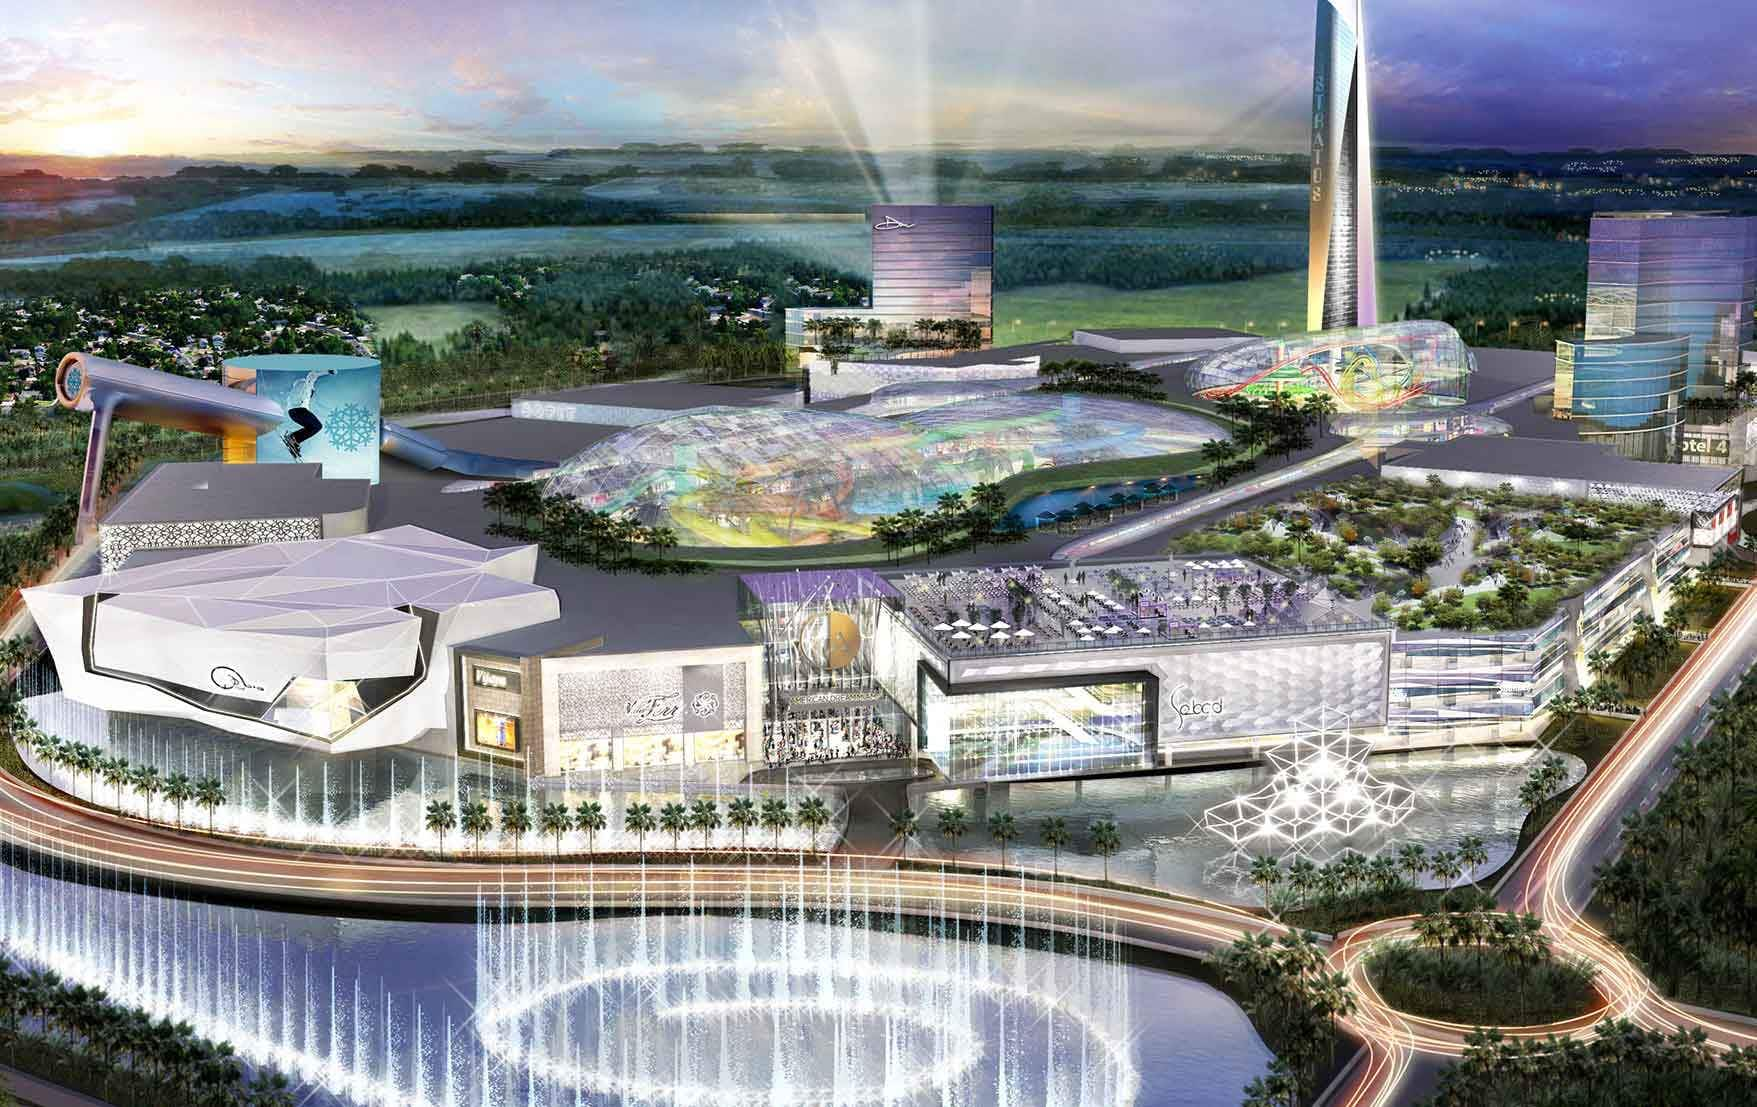 Miami's new shopping mall will be the size of a city